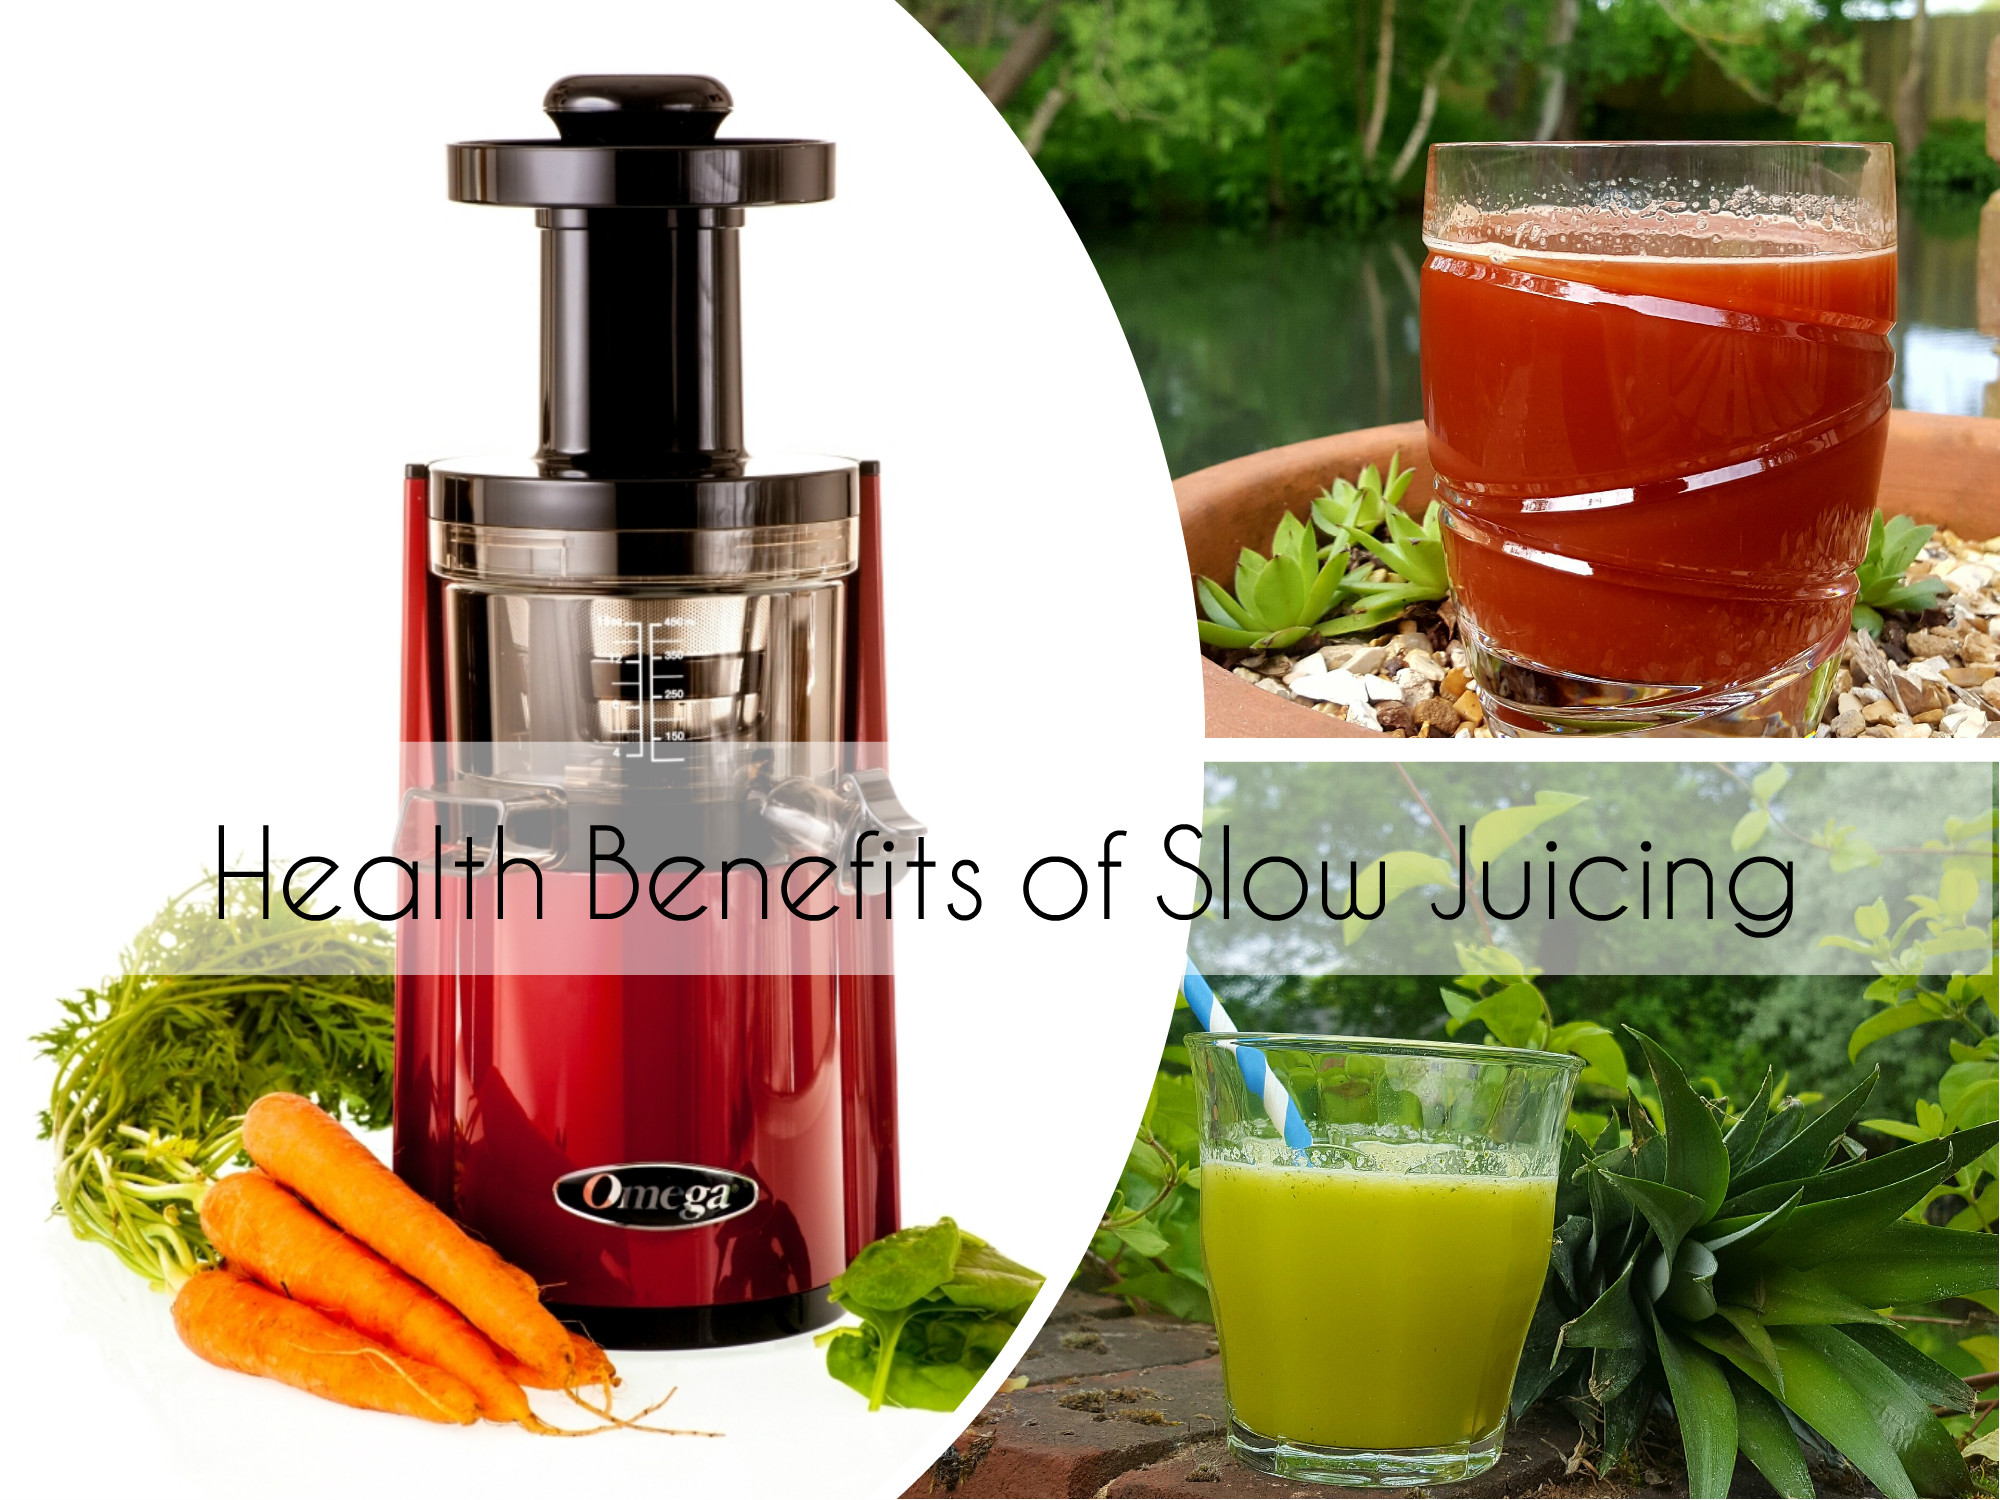 Slow Juice Benefits : Health Benefits of Slow Juicing for Women over 50 Fab after Fifty Information and ...